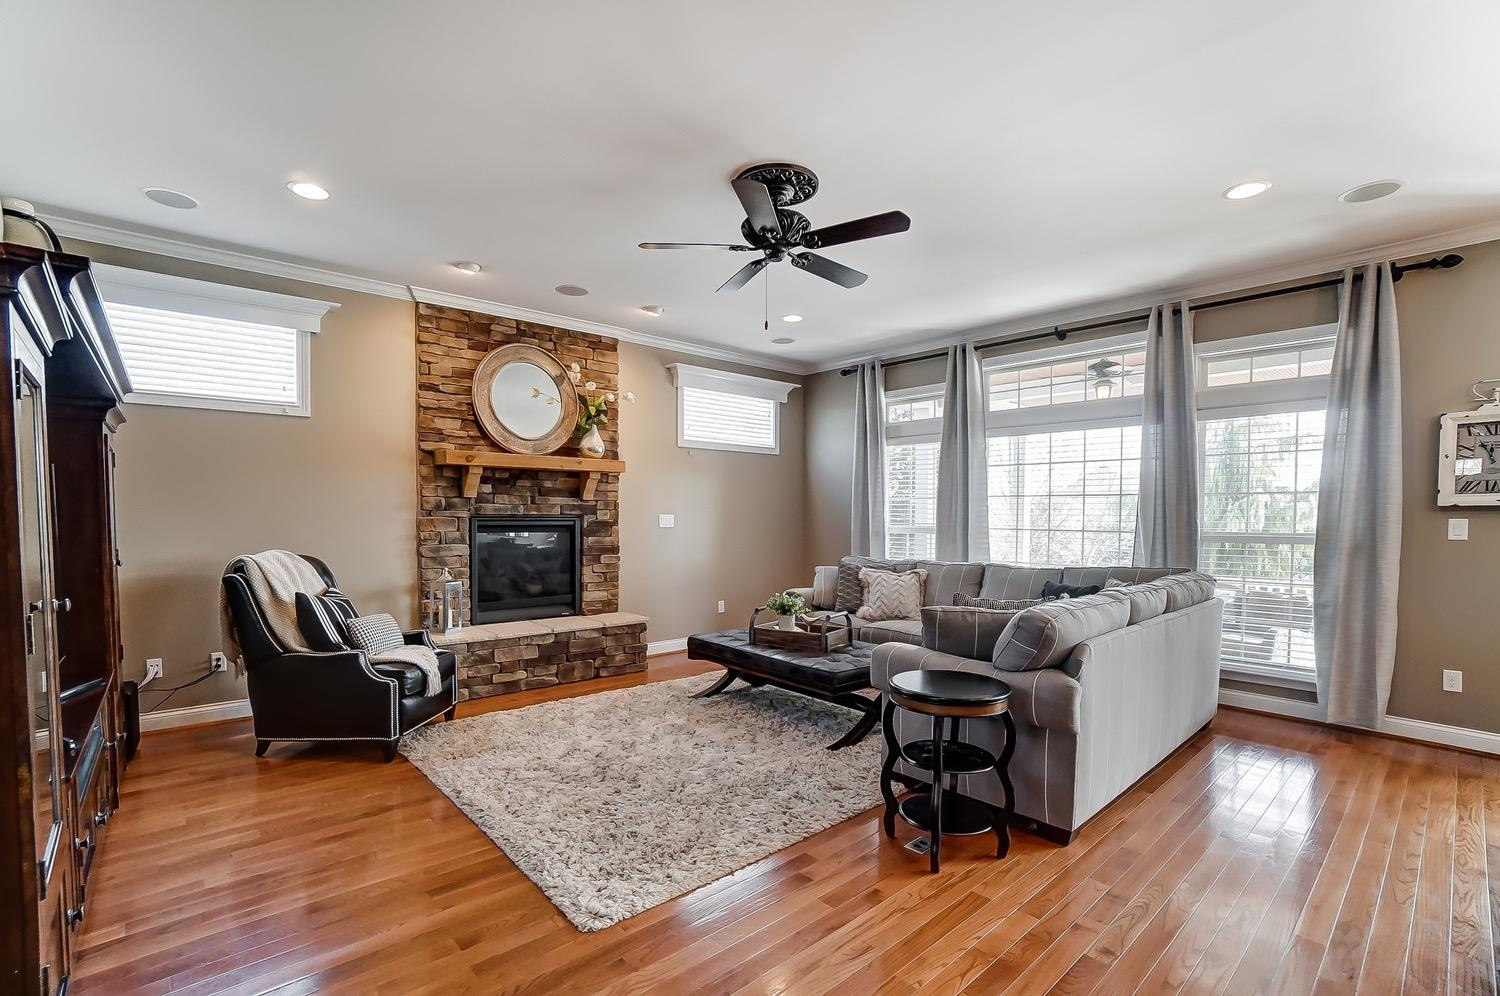 Family room has 10' ceiling, wall of windows, stone fireplace and hardwood floors.